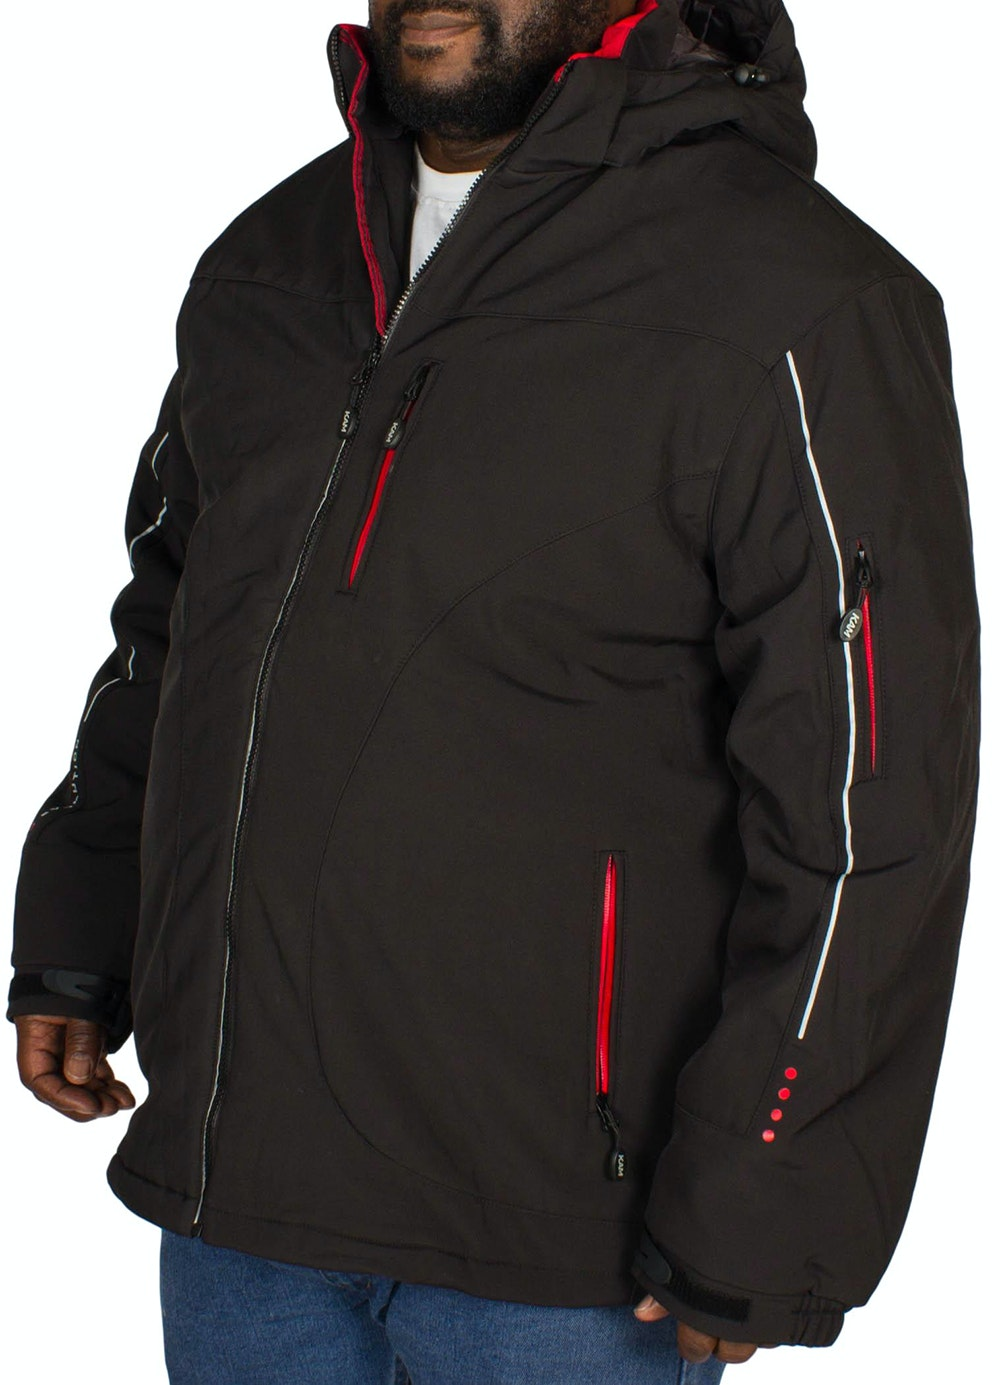 KAM Padded Soft Shell Jacket Black